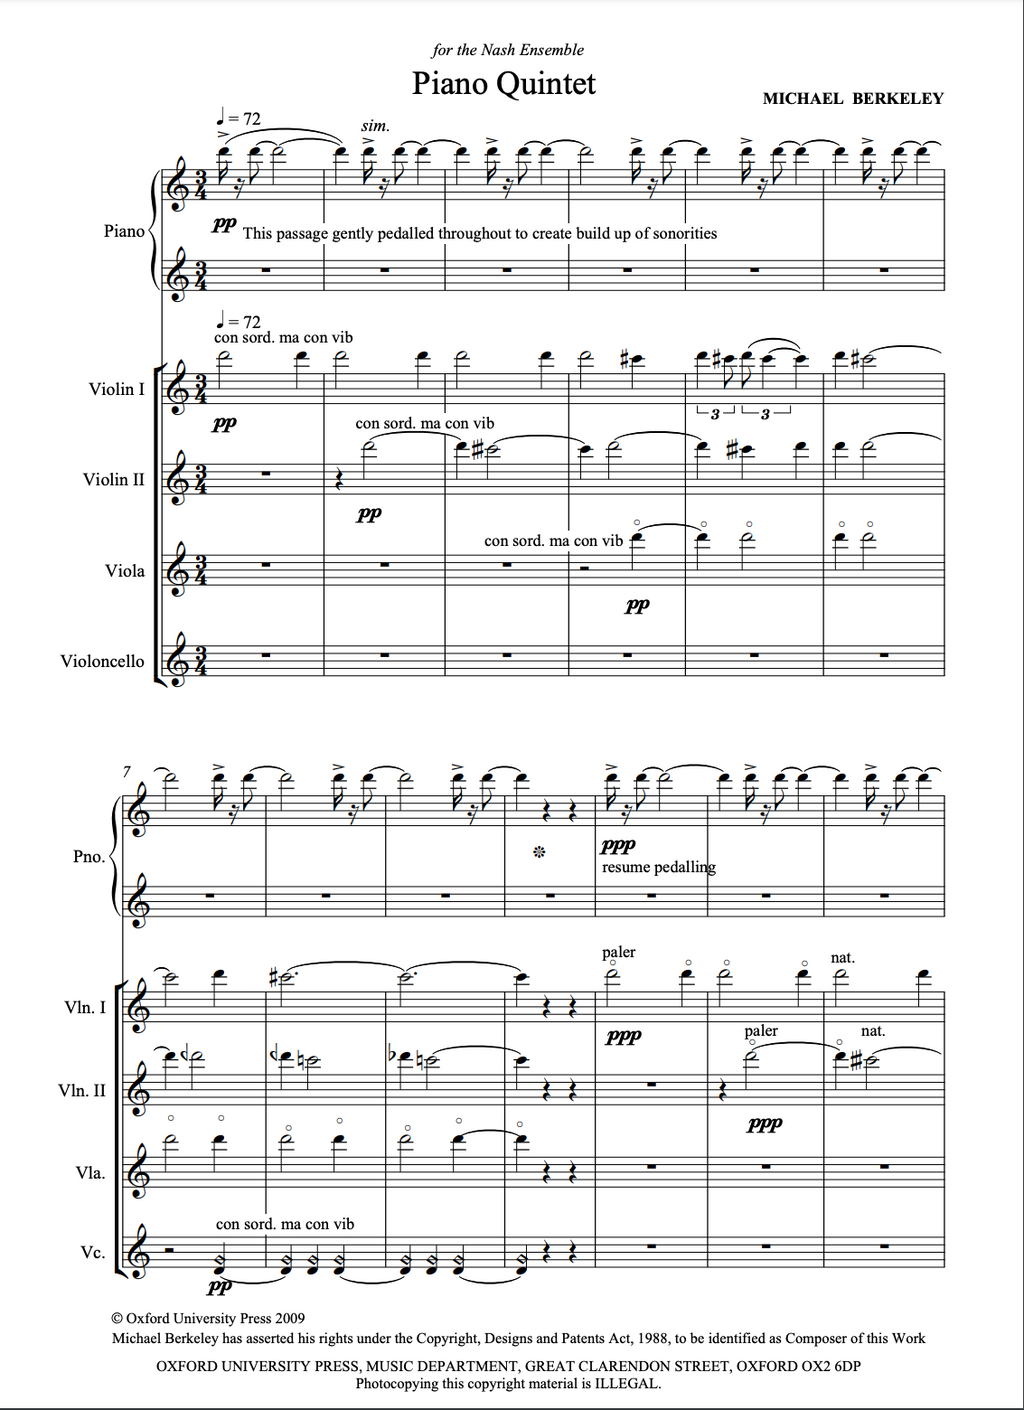 Piano Quintet: Score and parts. Page 1